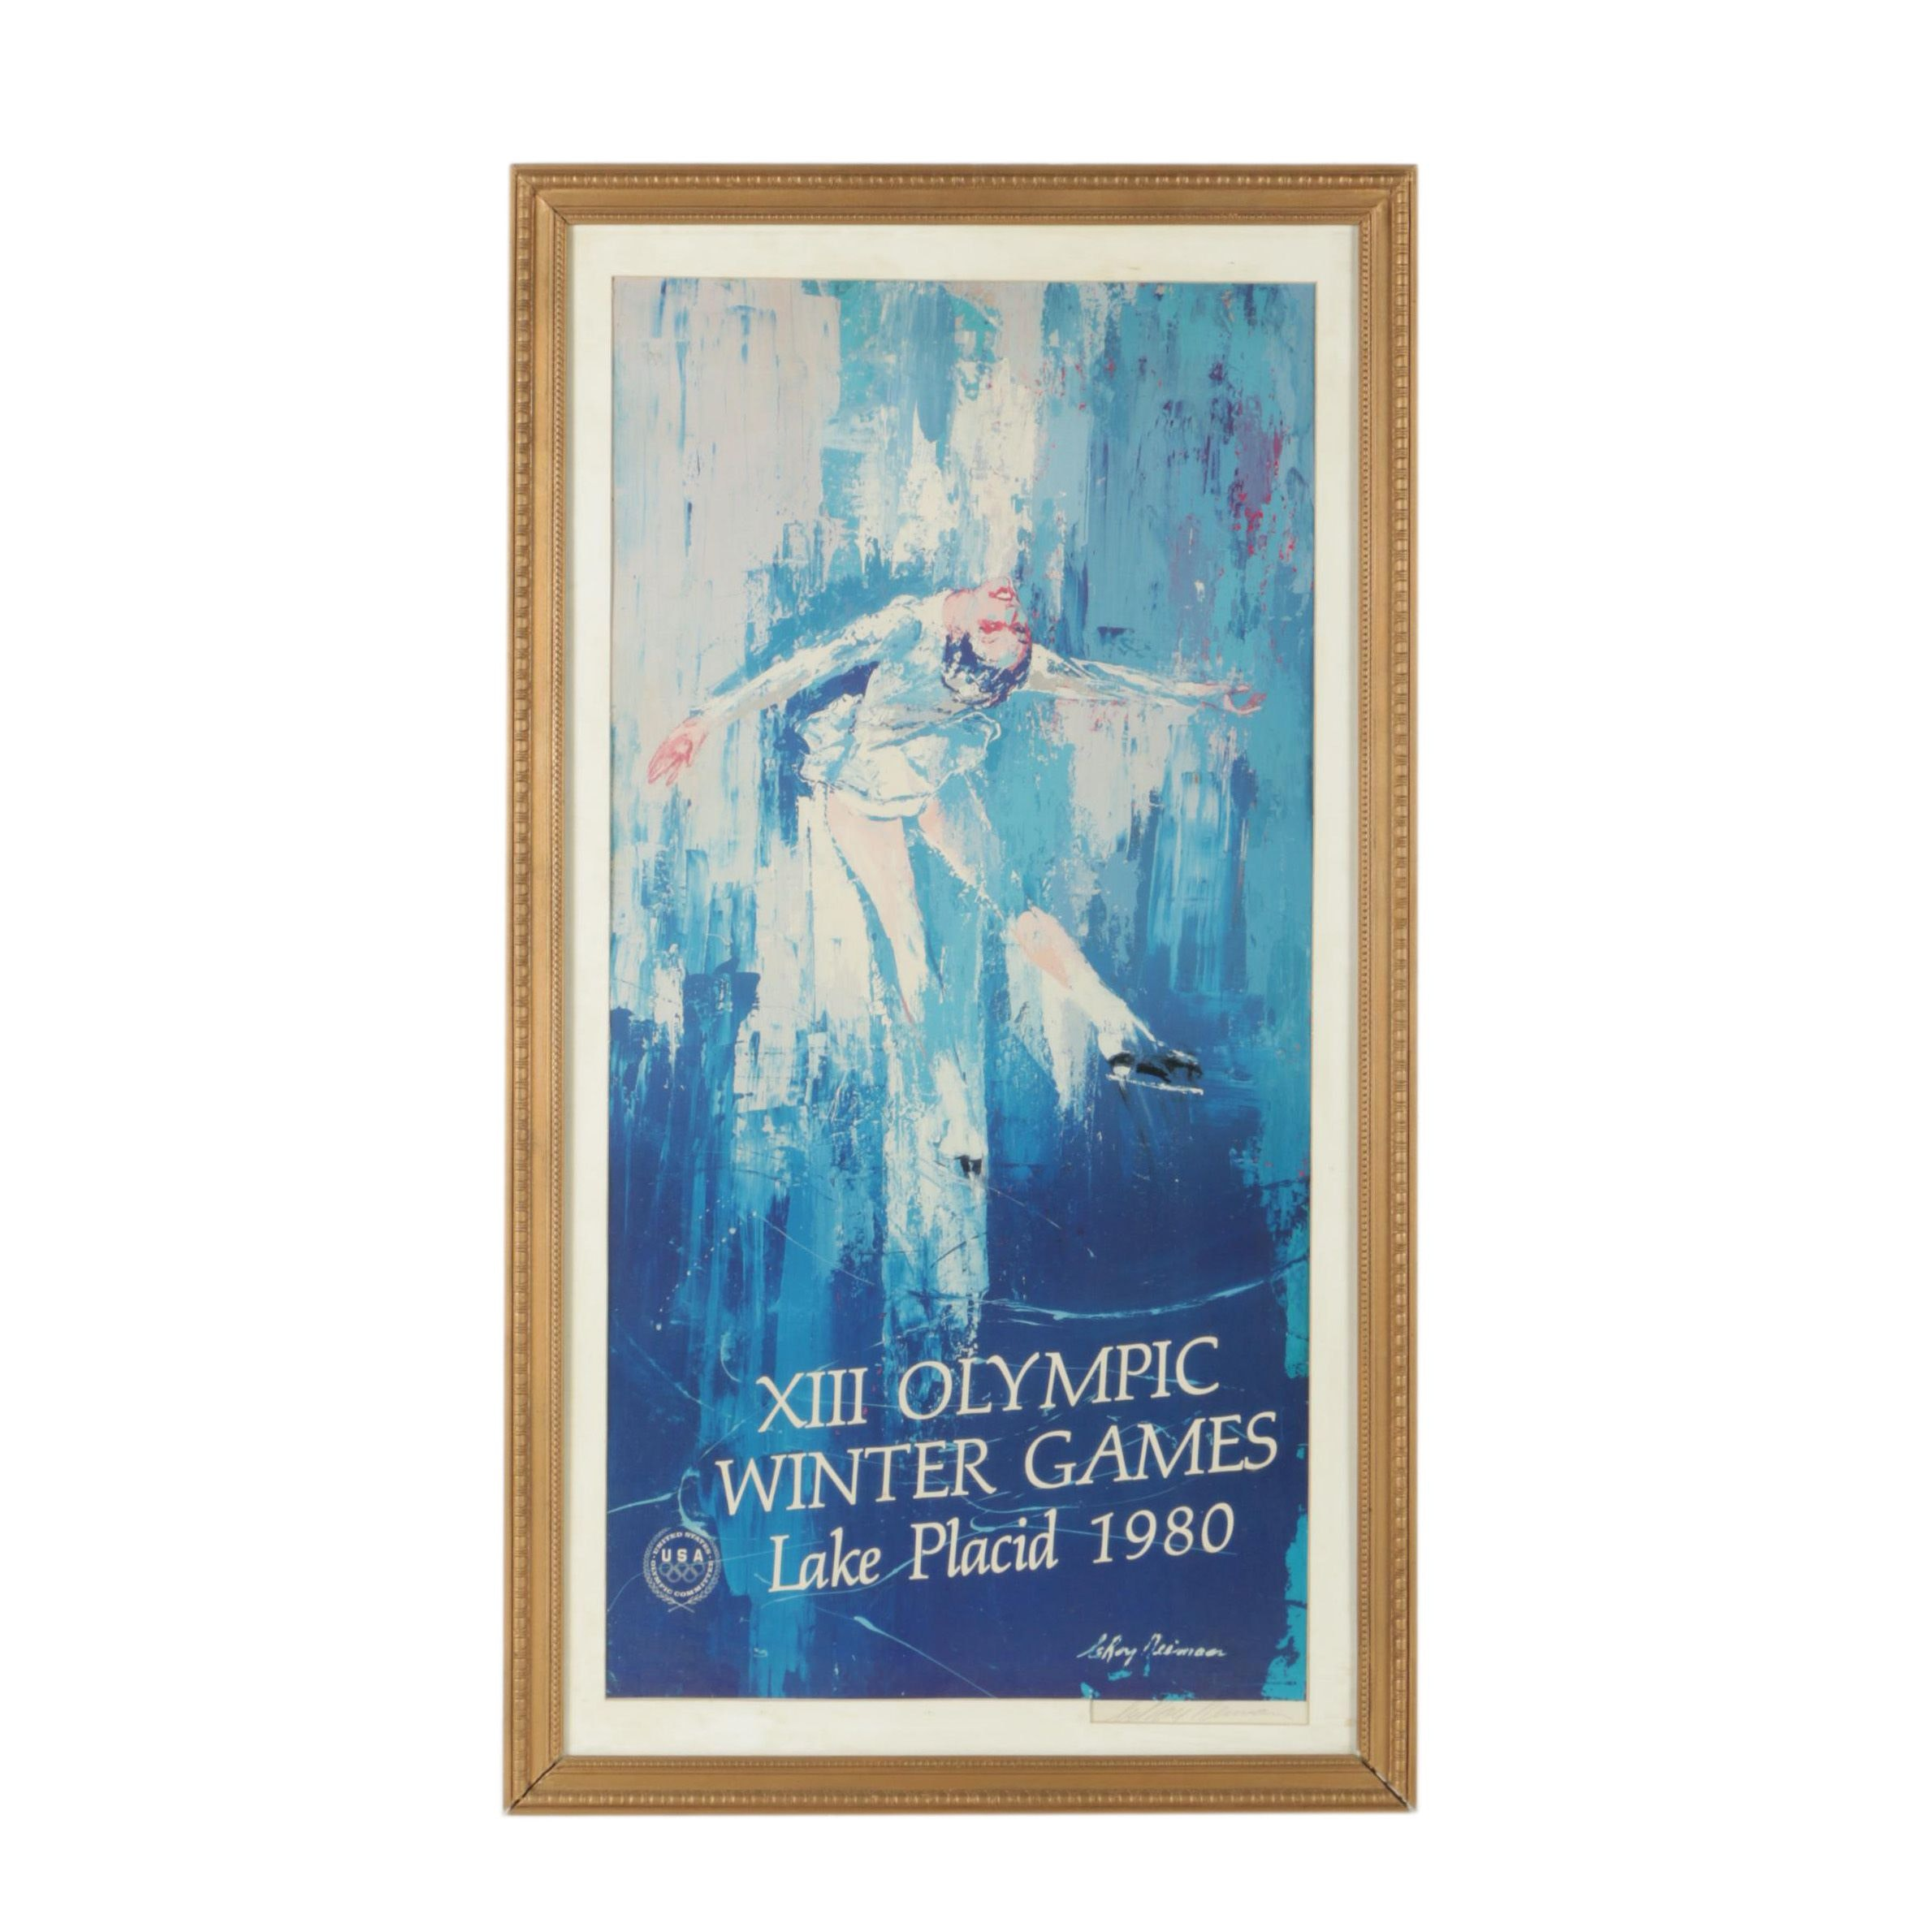 LeRoy Niemann Offset Lithograph Poster for the Lake Placid Winter Olympics